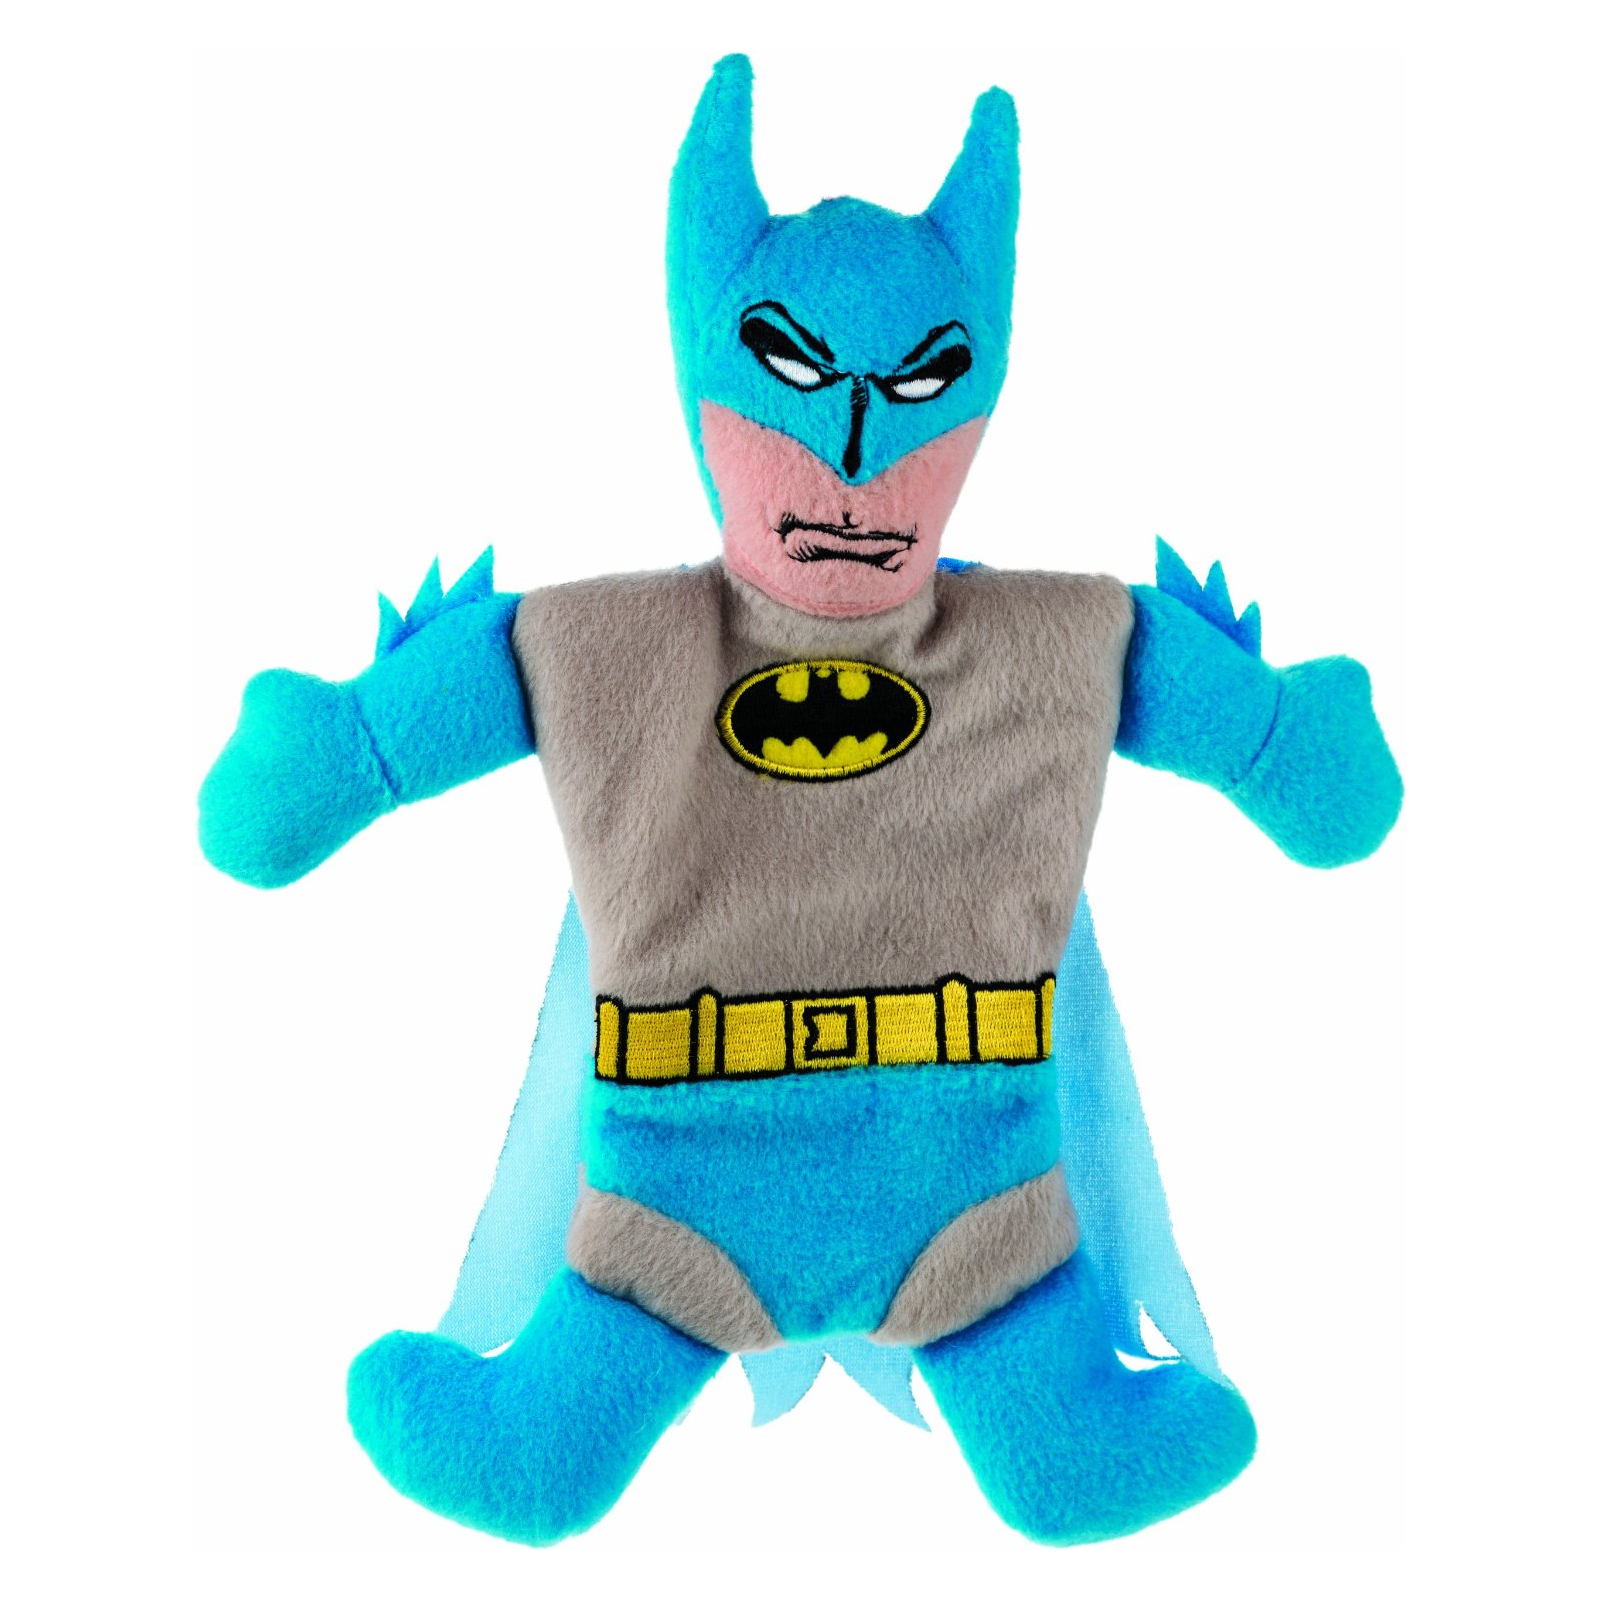 Fetch DC Comics Plush and Crinkle Batman Dog Toy, 11 inch